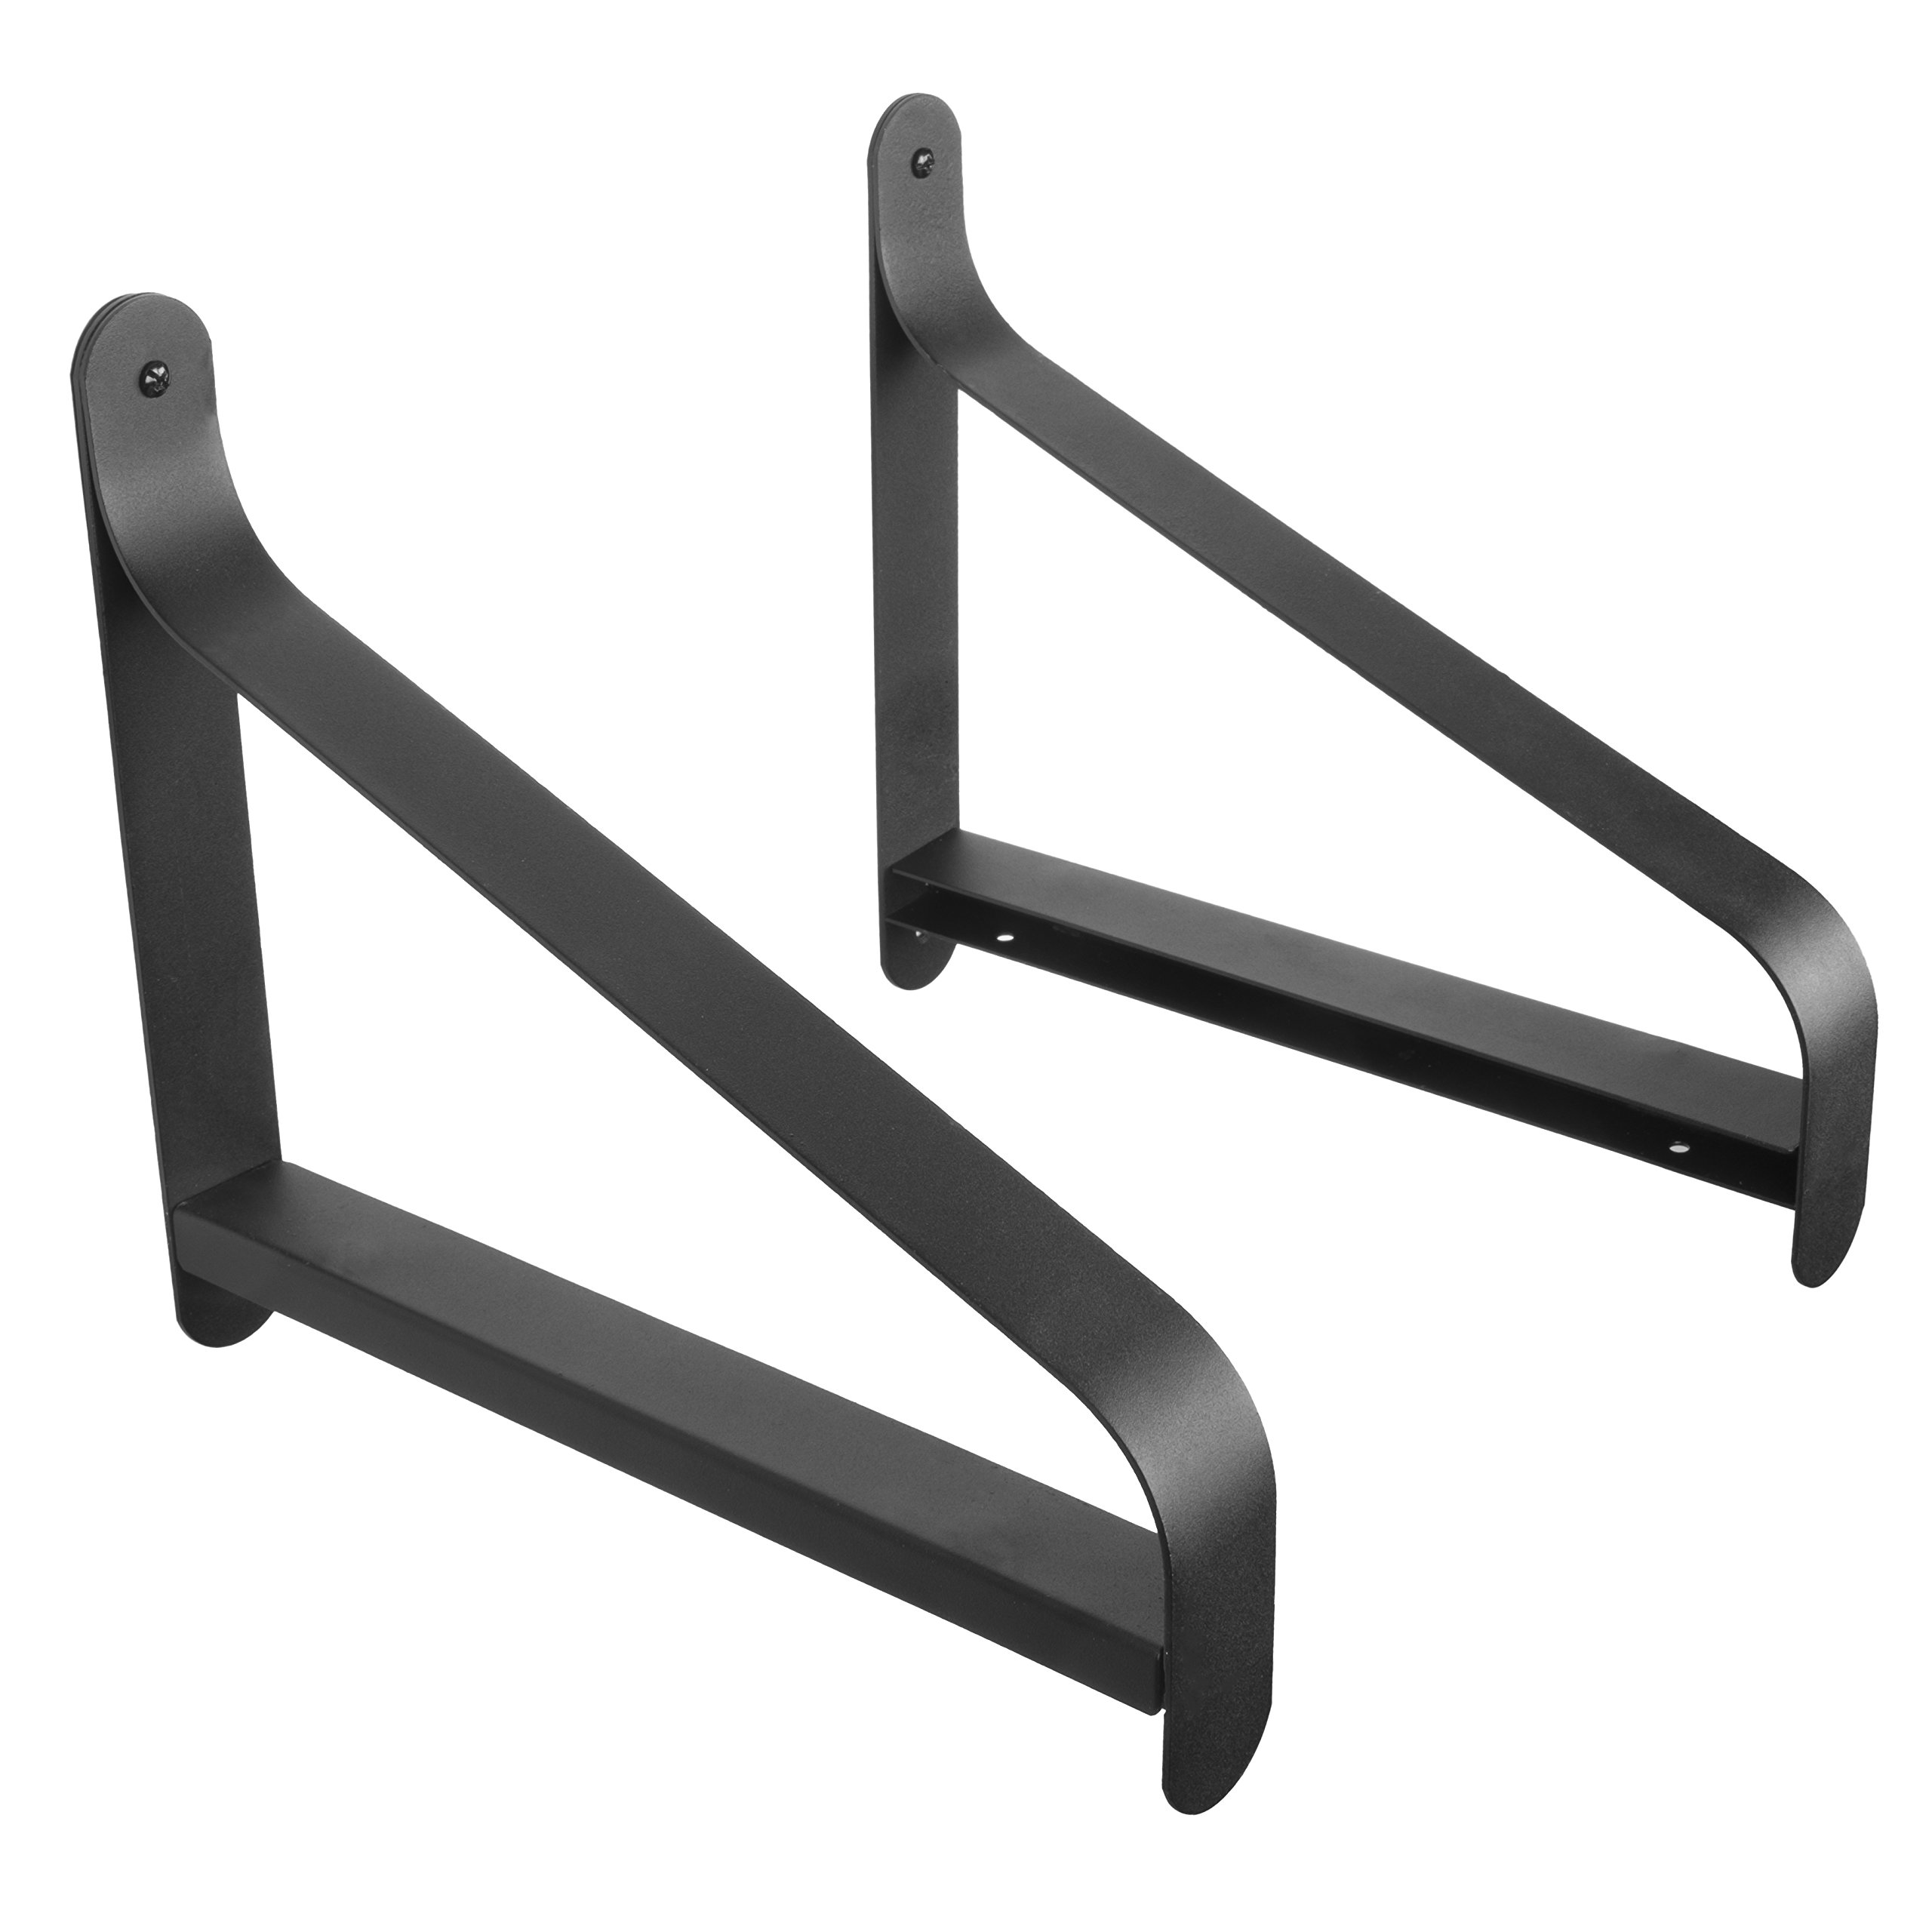 ArtifactDesign Metal Shelf Brackets with Modern Heavy Duty Design Fits Wood Shelves Perfect for Bookcase TV Storage Rack Garage Wall Mounting Pack of 2 (11.5 Inches) by ArtifactDesign